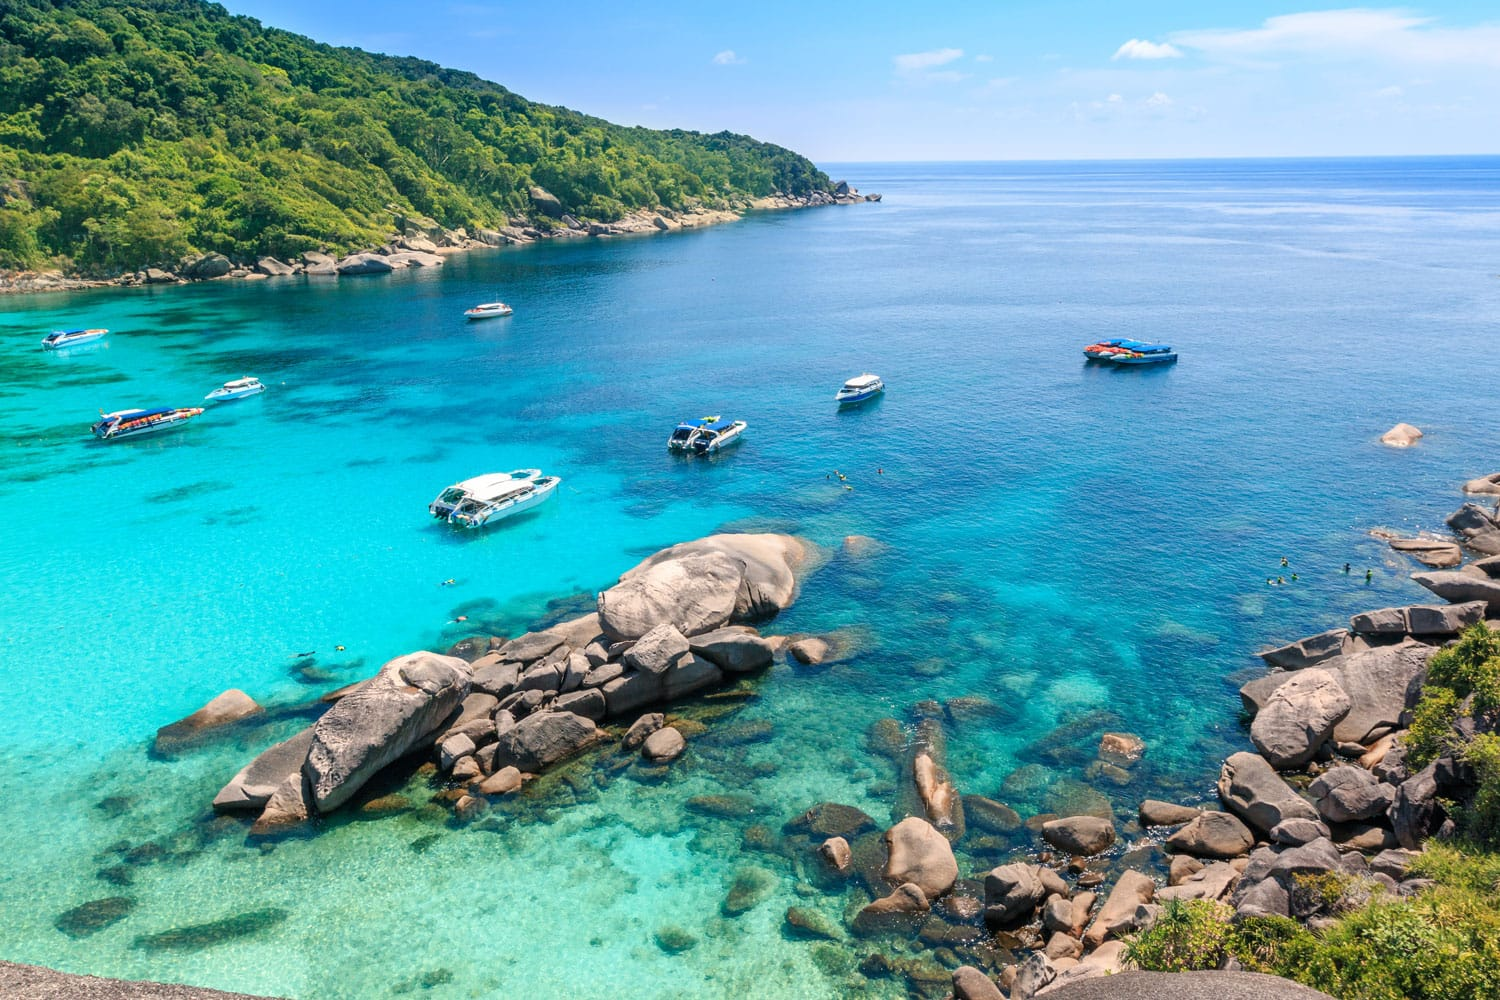 Top view of Similan Island National Park on Andaman sea in Thailand.